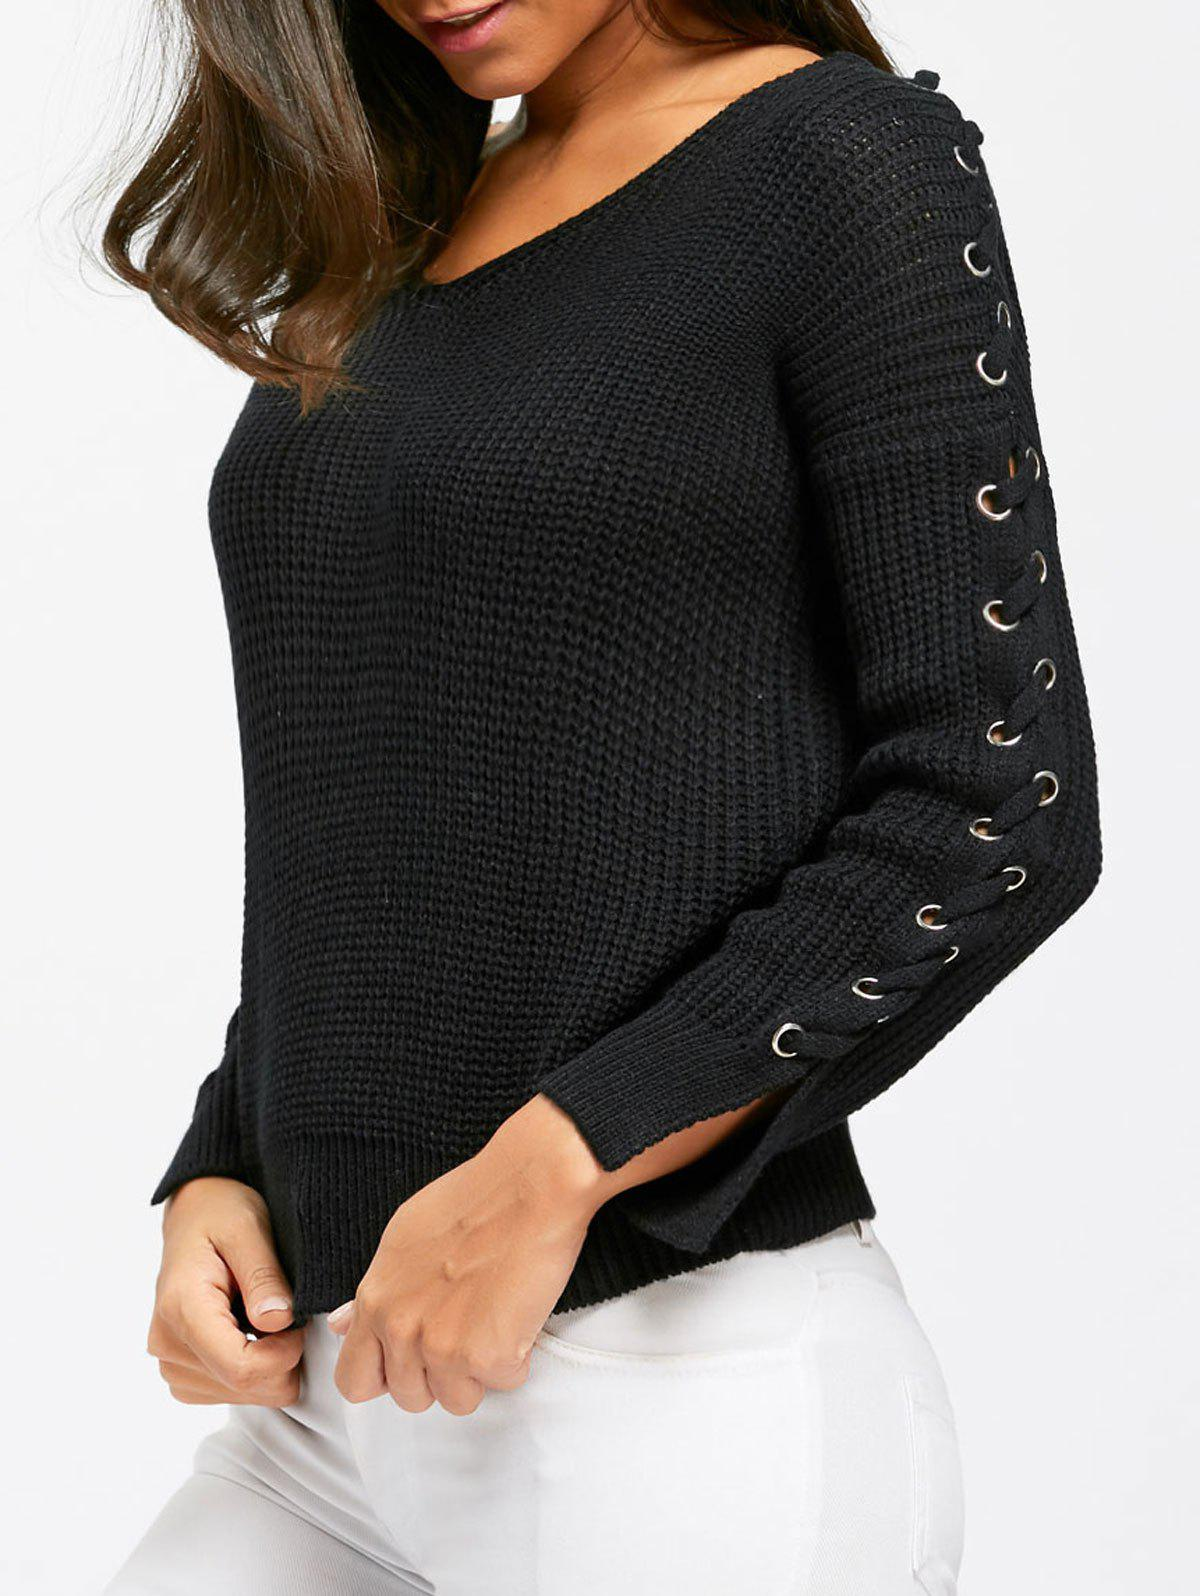 V Neck Lace Up Chunky Sweater Noir Taille Unique